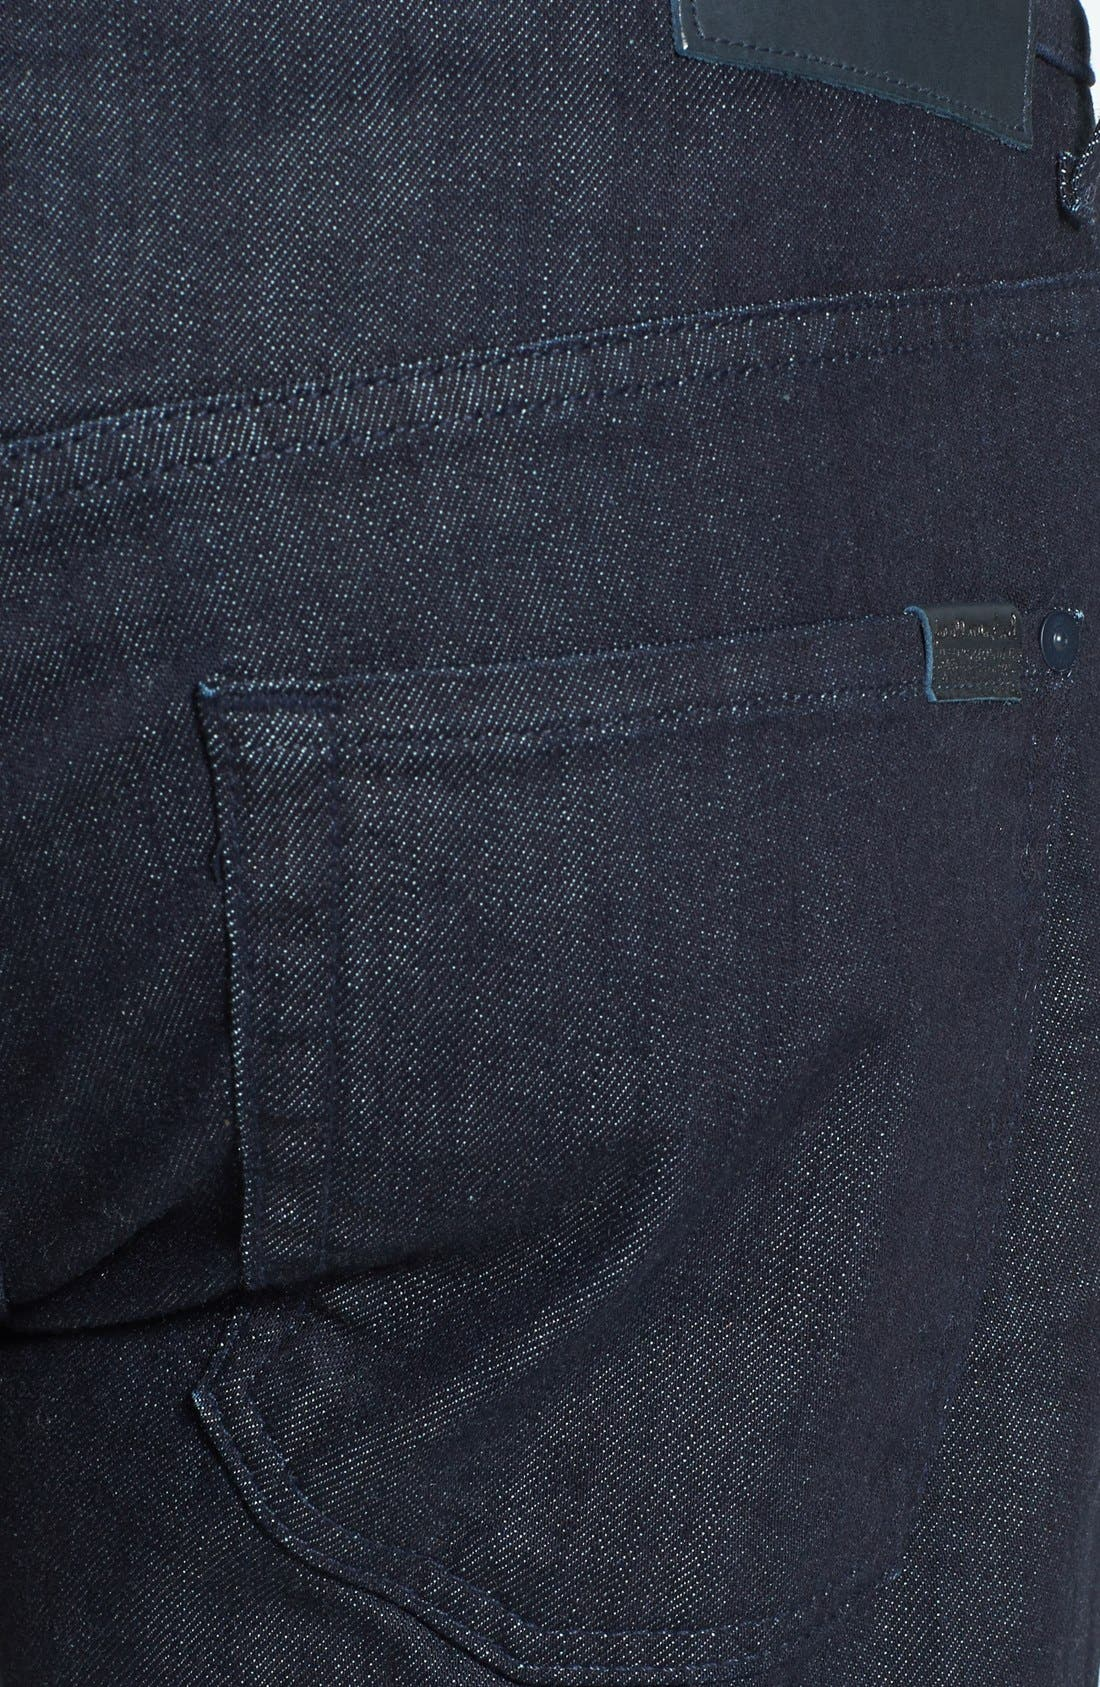 The Straight - Luxe Performance Slim Straight Leg Jeans,                             Alternate thumbnail 4, color,                             DEEP WELL